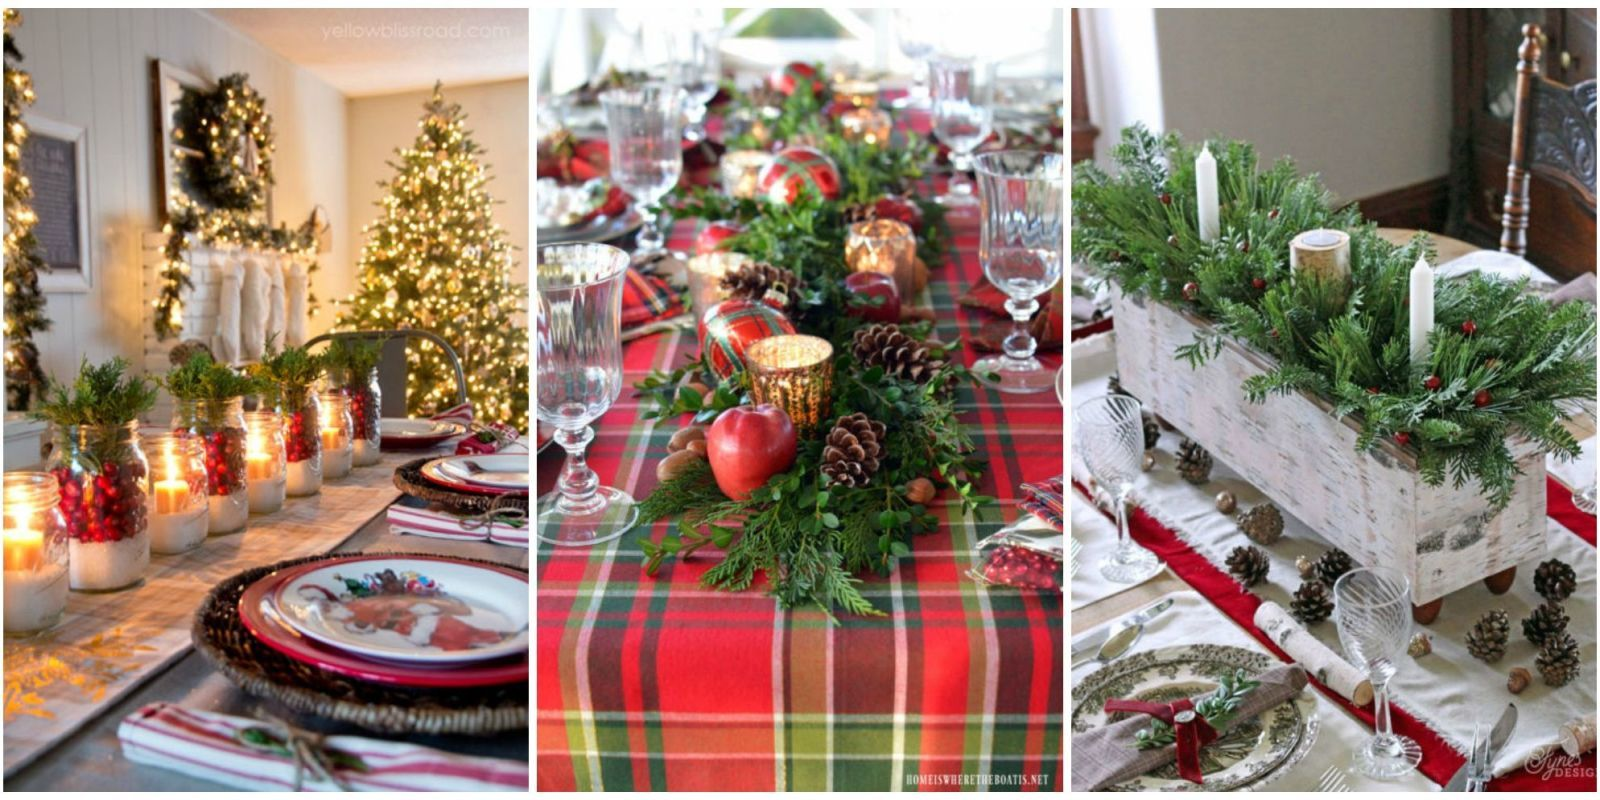 Try these special touches to make your holiday table sparkle. & 49 Best Christmas Table Settings - Decorations and Centerpiece Ideas ...